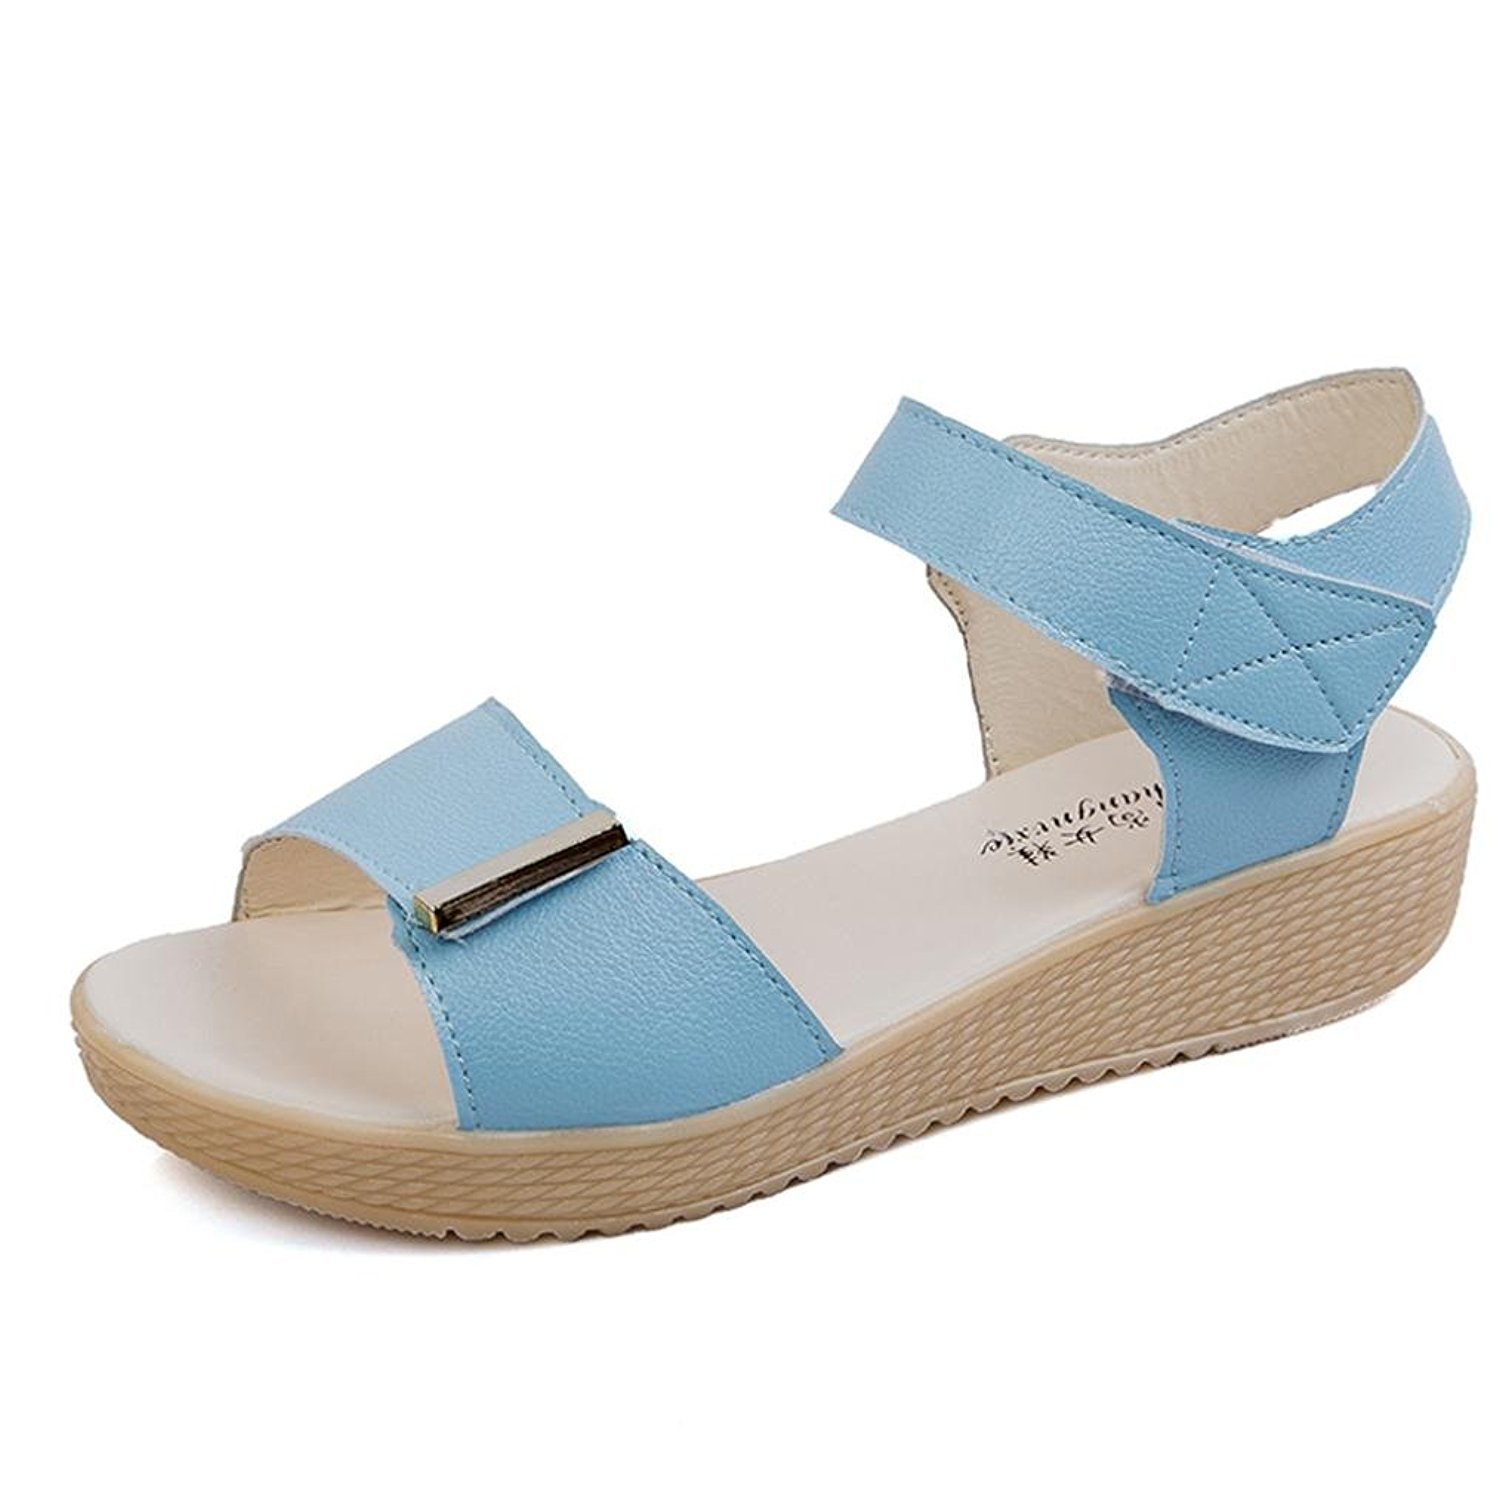 212b63fe59c934 Kingko® Women s Summer Wedge Heel Candy Colour Sweet Style Sandals Beach  Shoes  Amazon.co.uk  Shoes   Bags